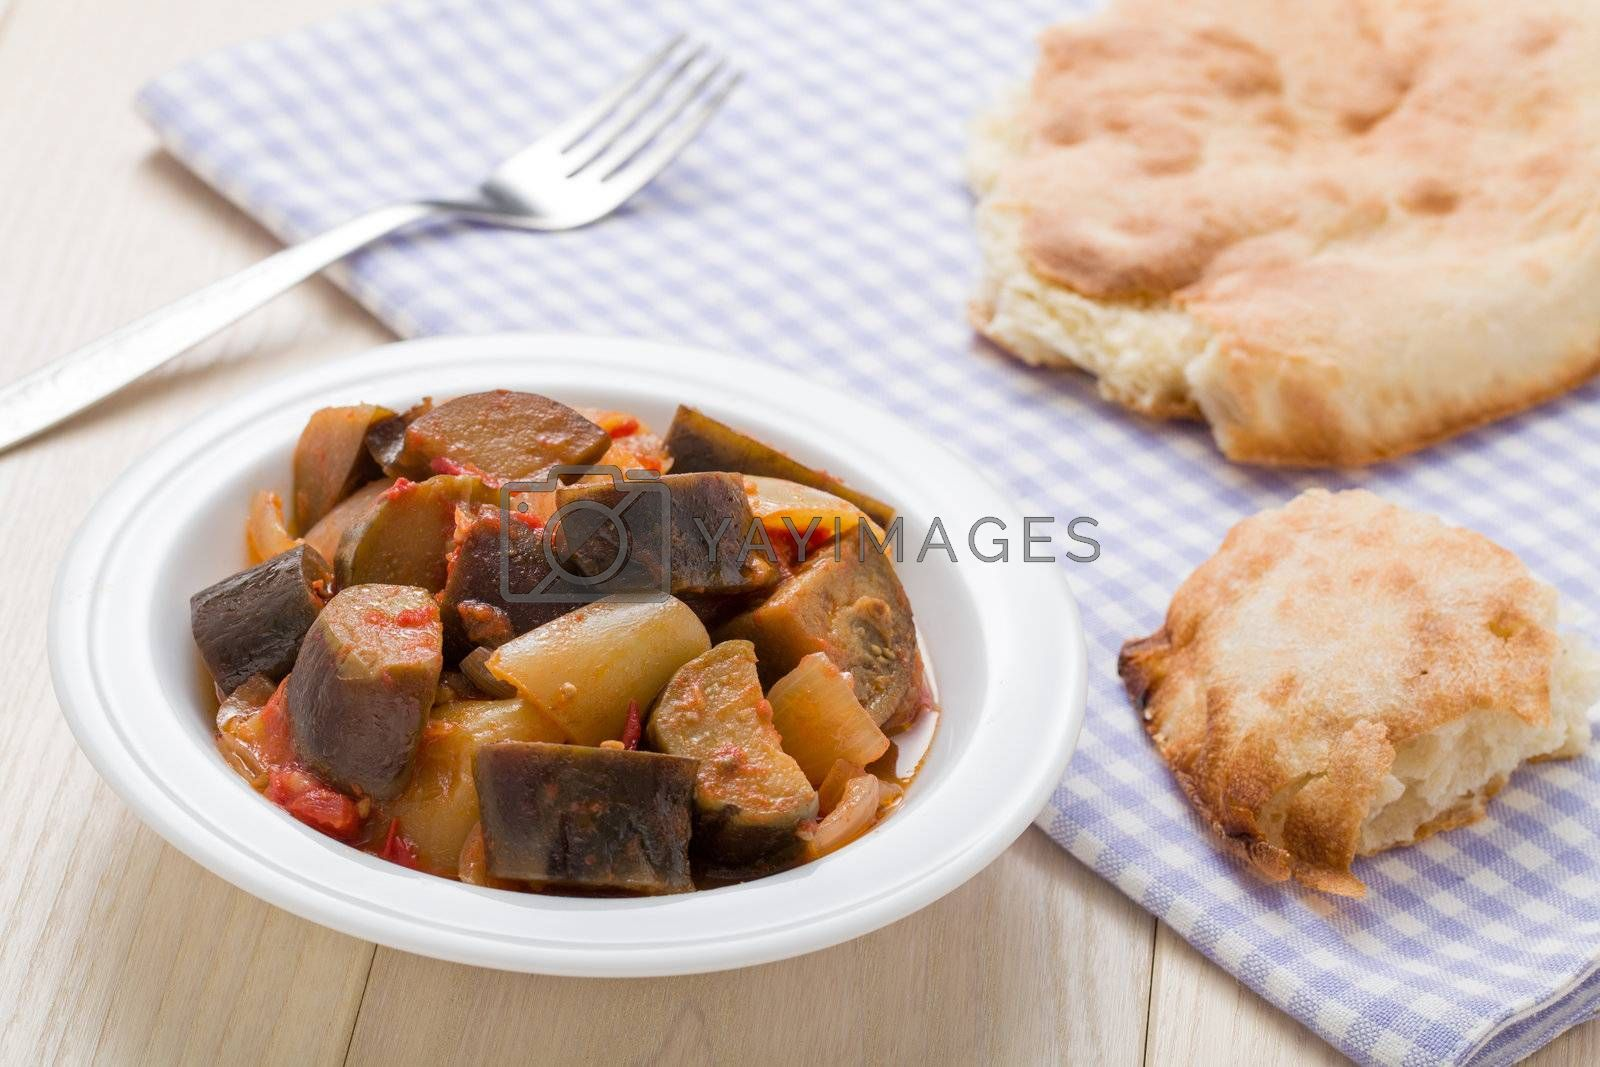 Cooked stewed eggplants in plate served with bread, fork on linen napkin and wooden table